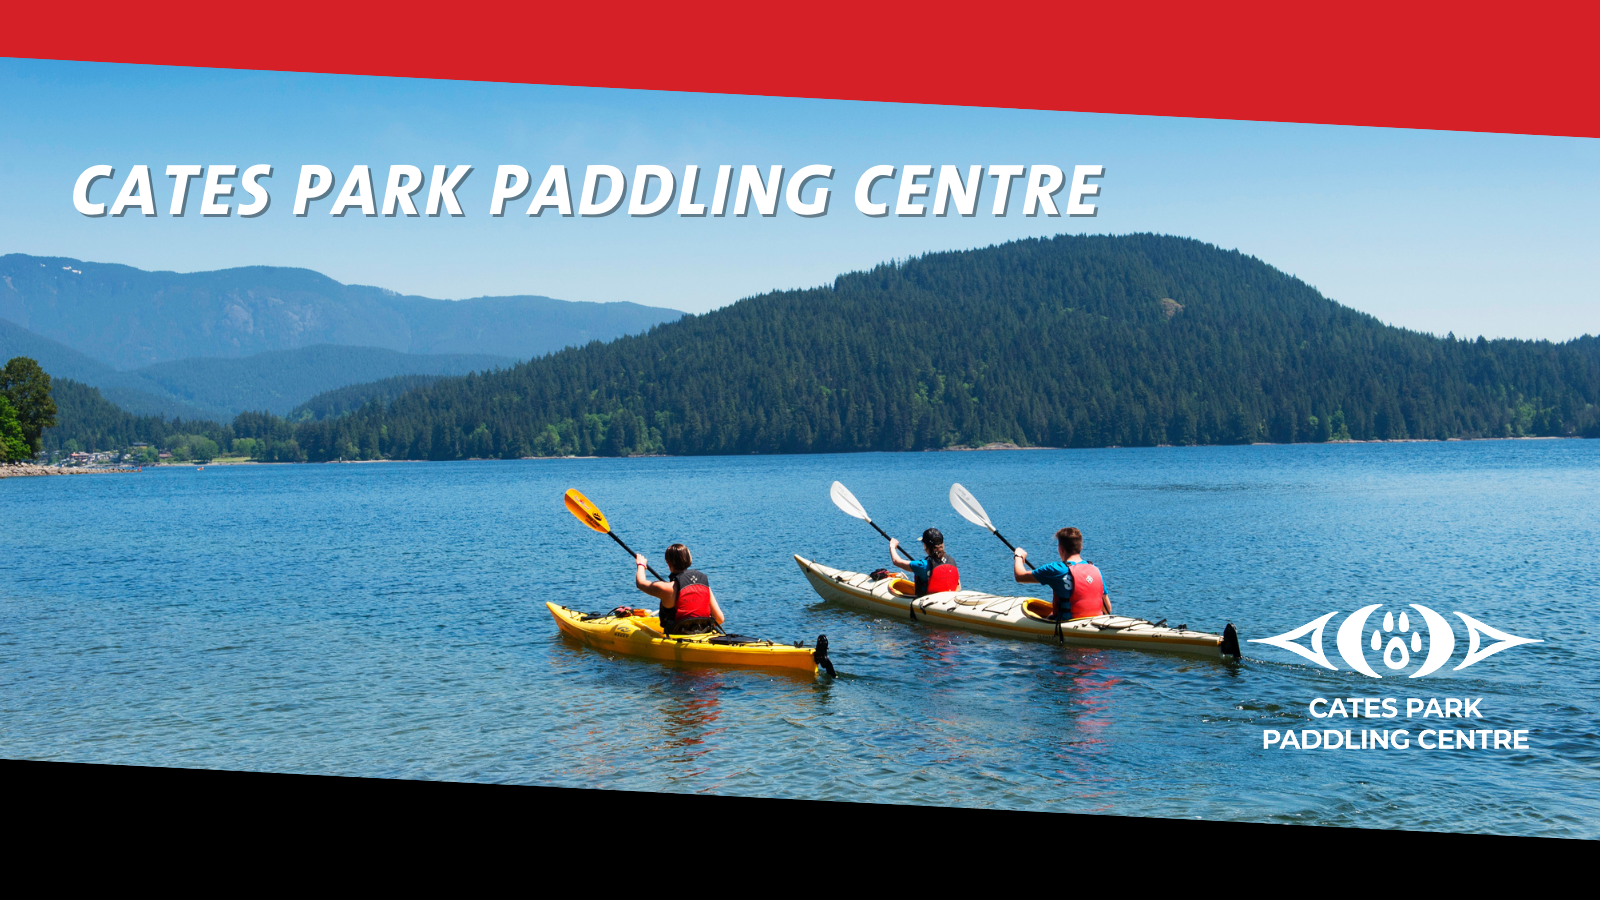 Cates Park Paddling Centre